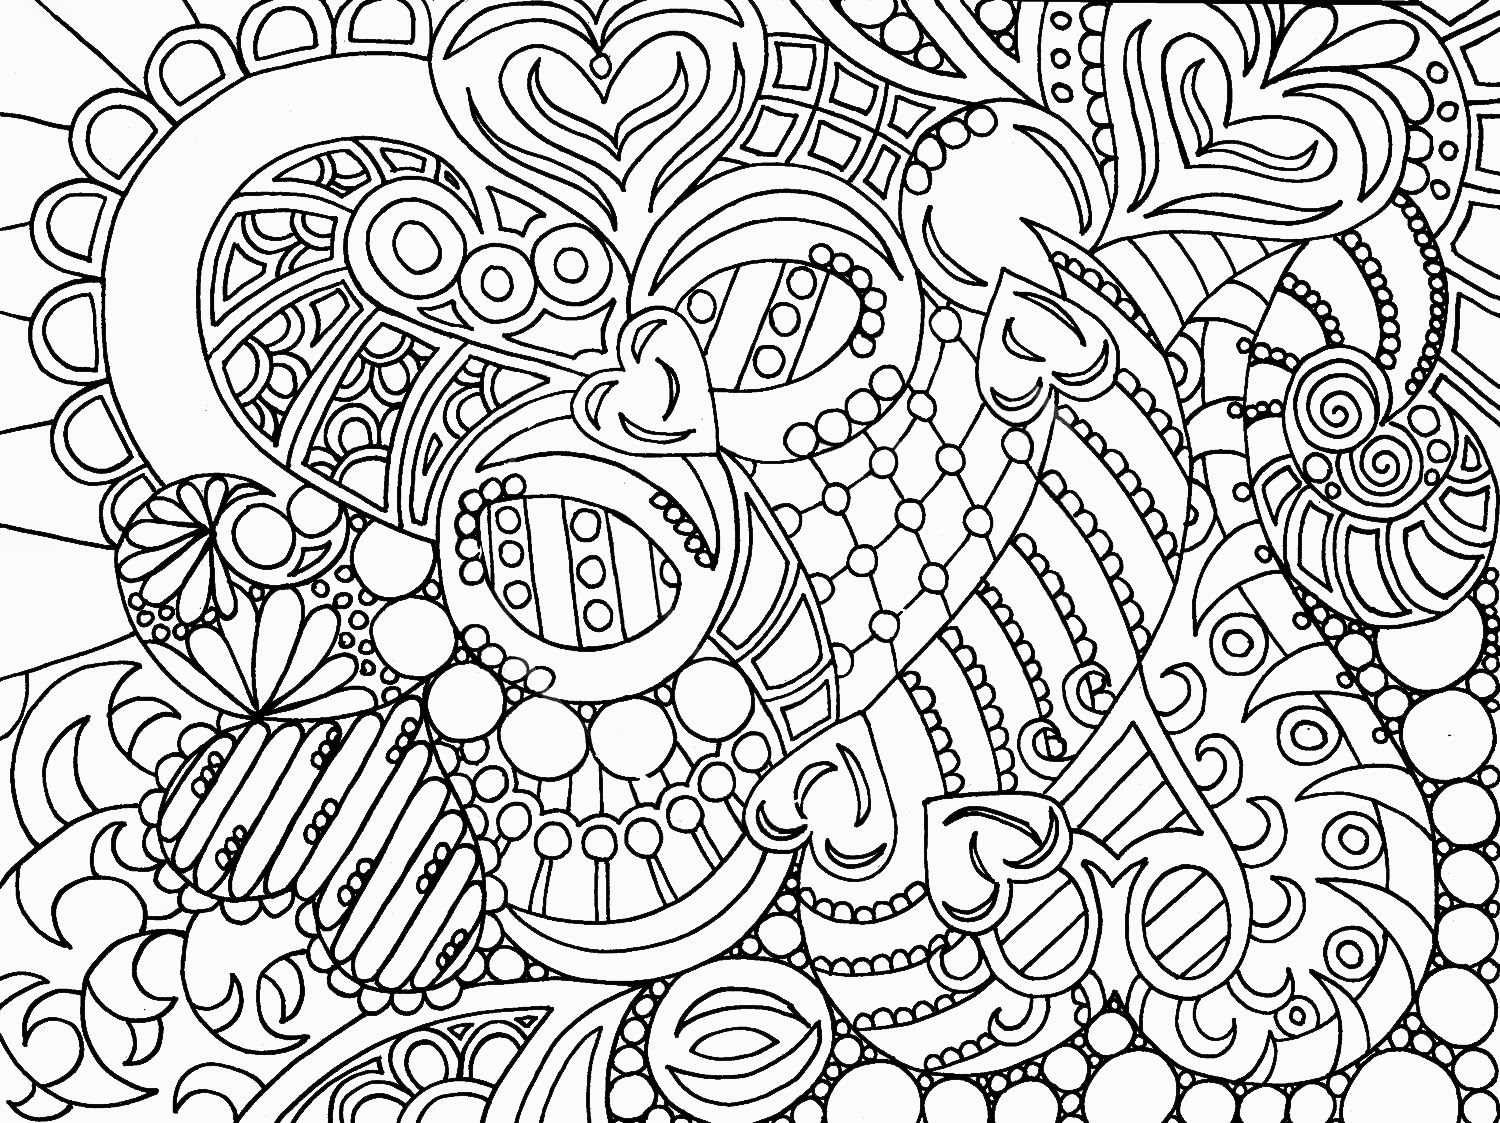 creative coloring pages - Creative Coloring Sheets